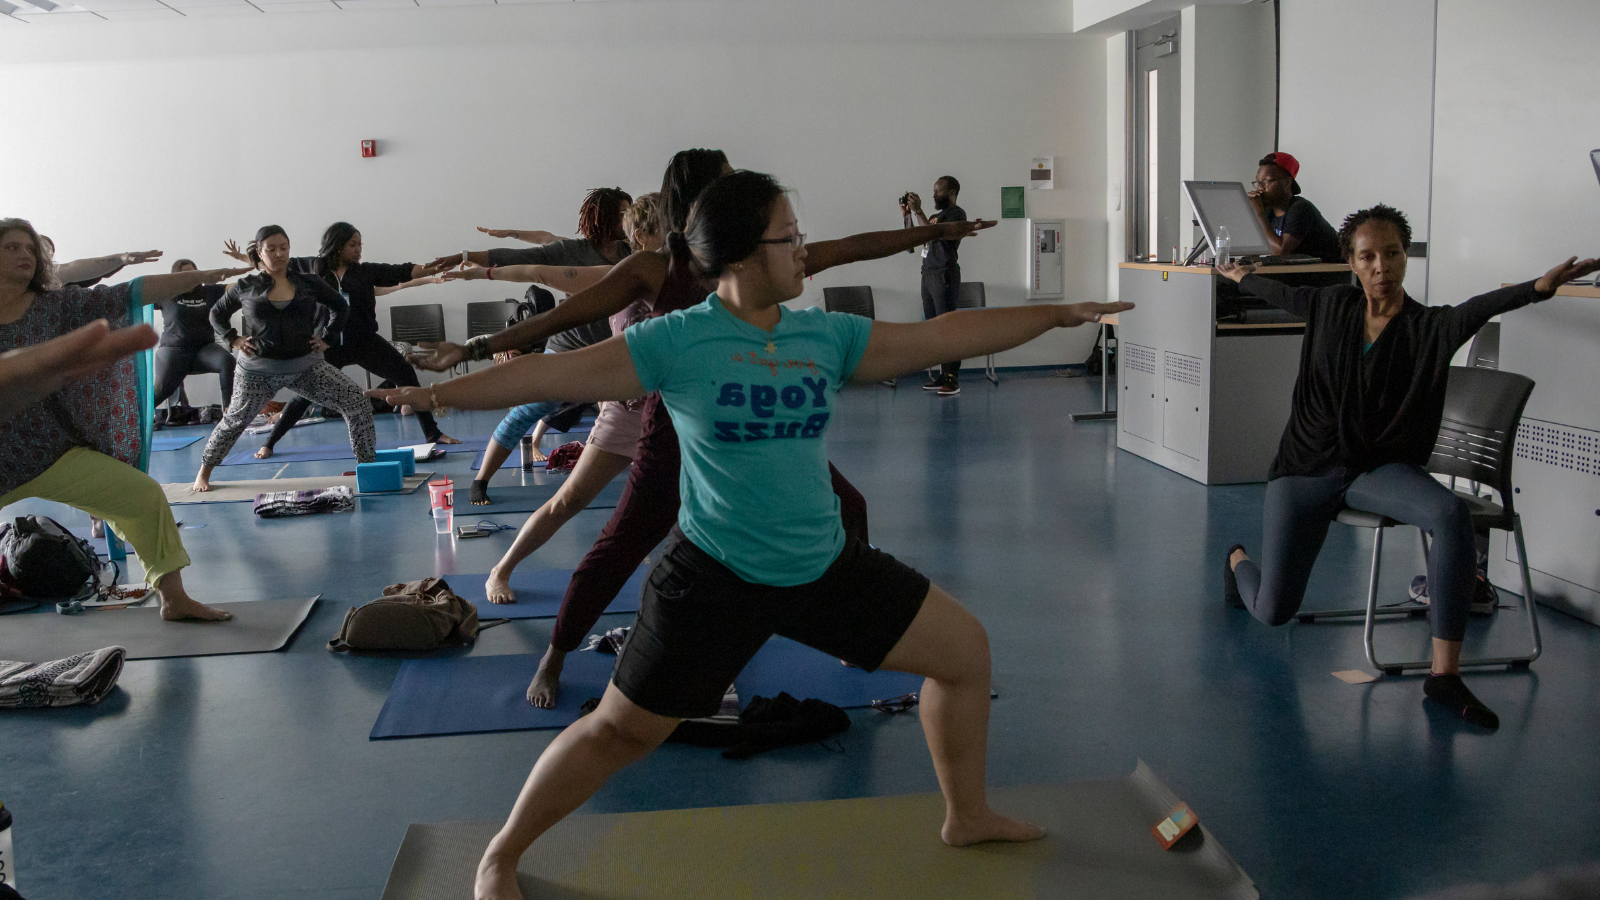 Providing yoga pose variations. chair yoga, providing props and chairs in yoga class, accessibility for all yoga students